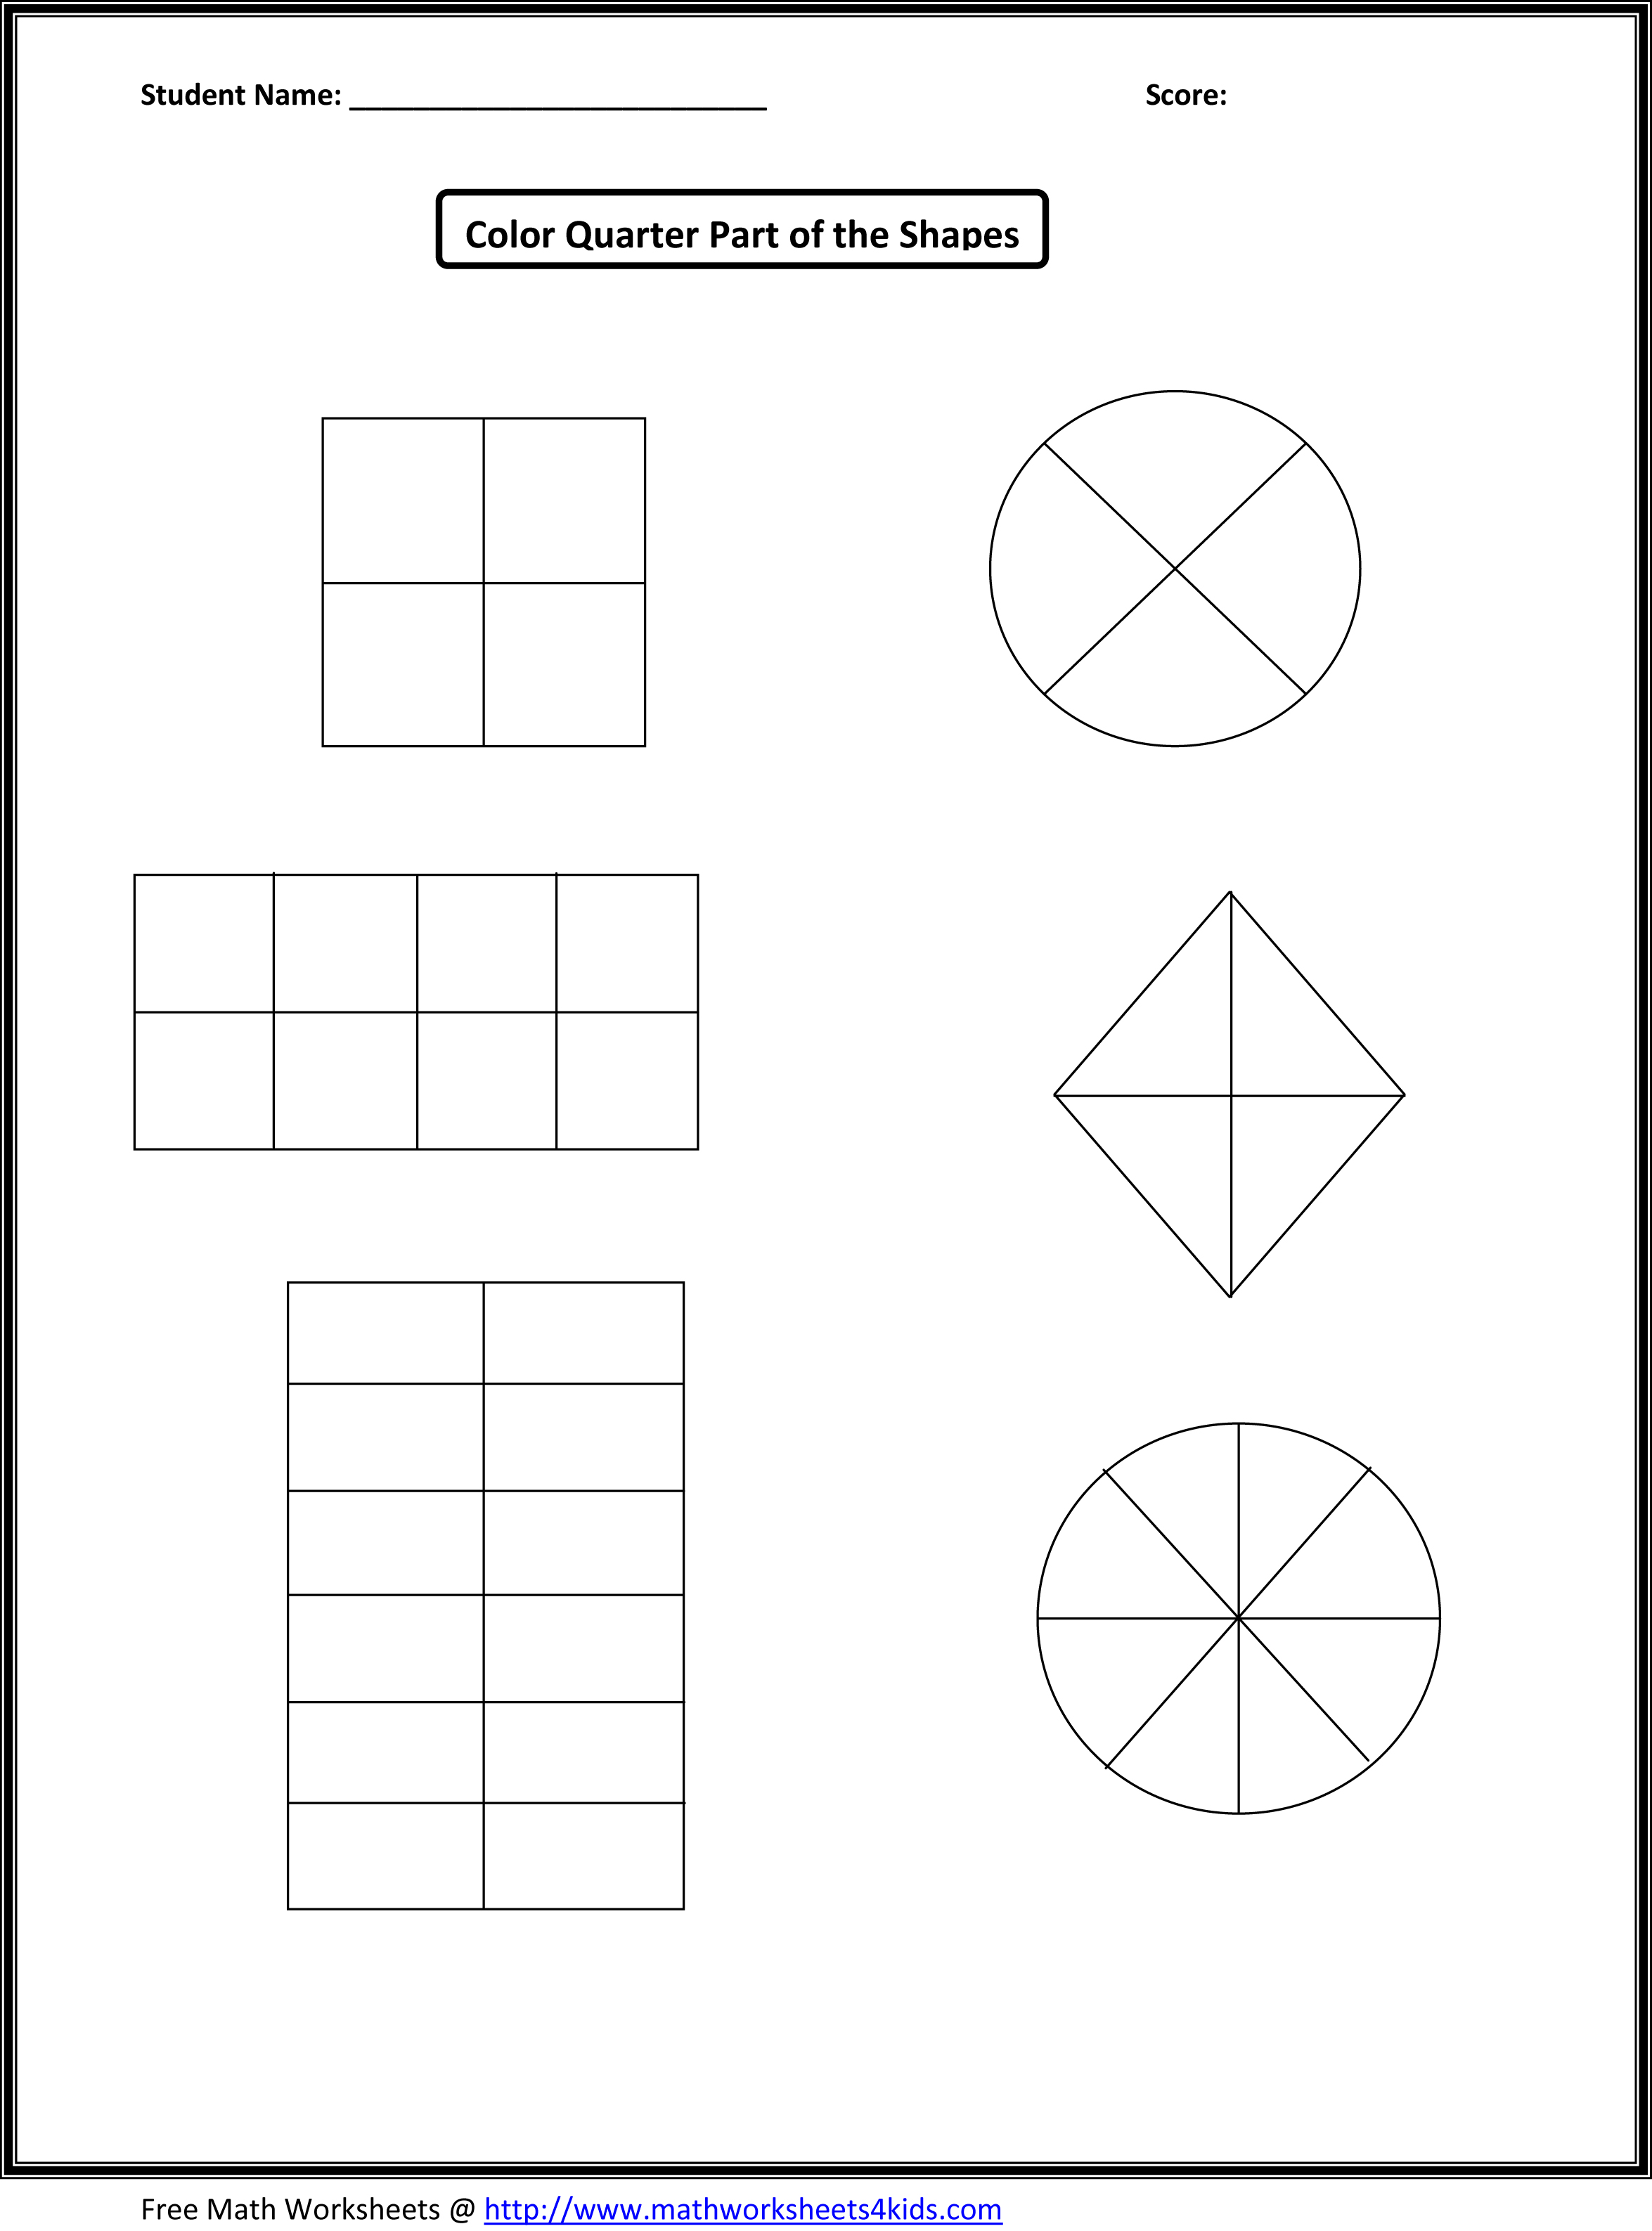 13 Best Images Of Math For 5th Worksheet Answer Sheet To